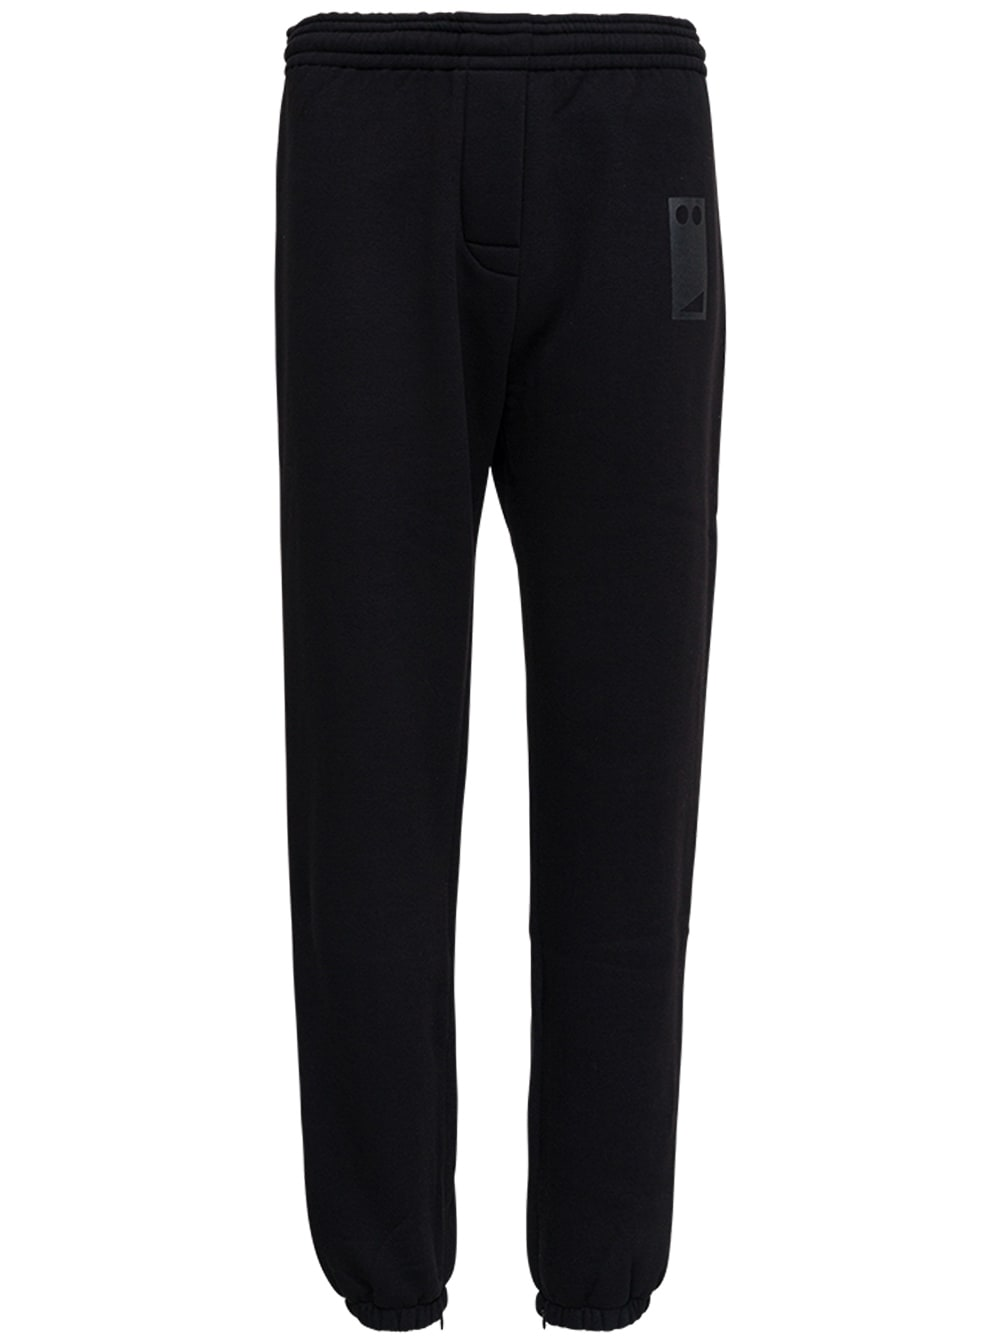 Black Cotton Joggers With Drawstring